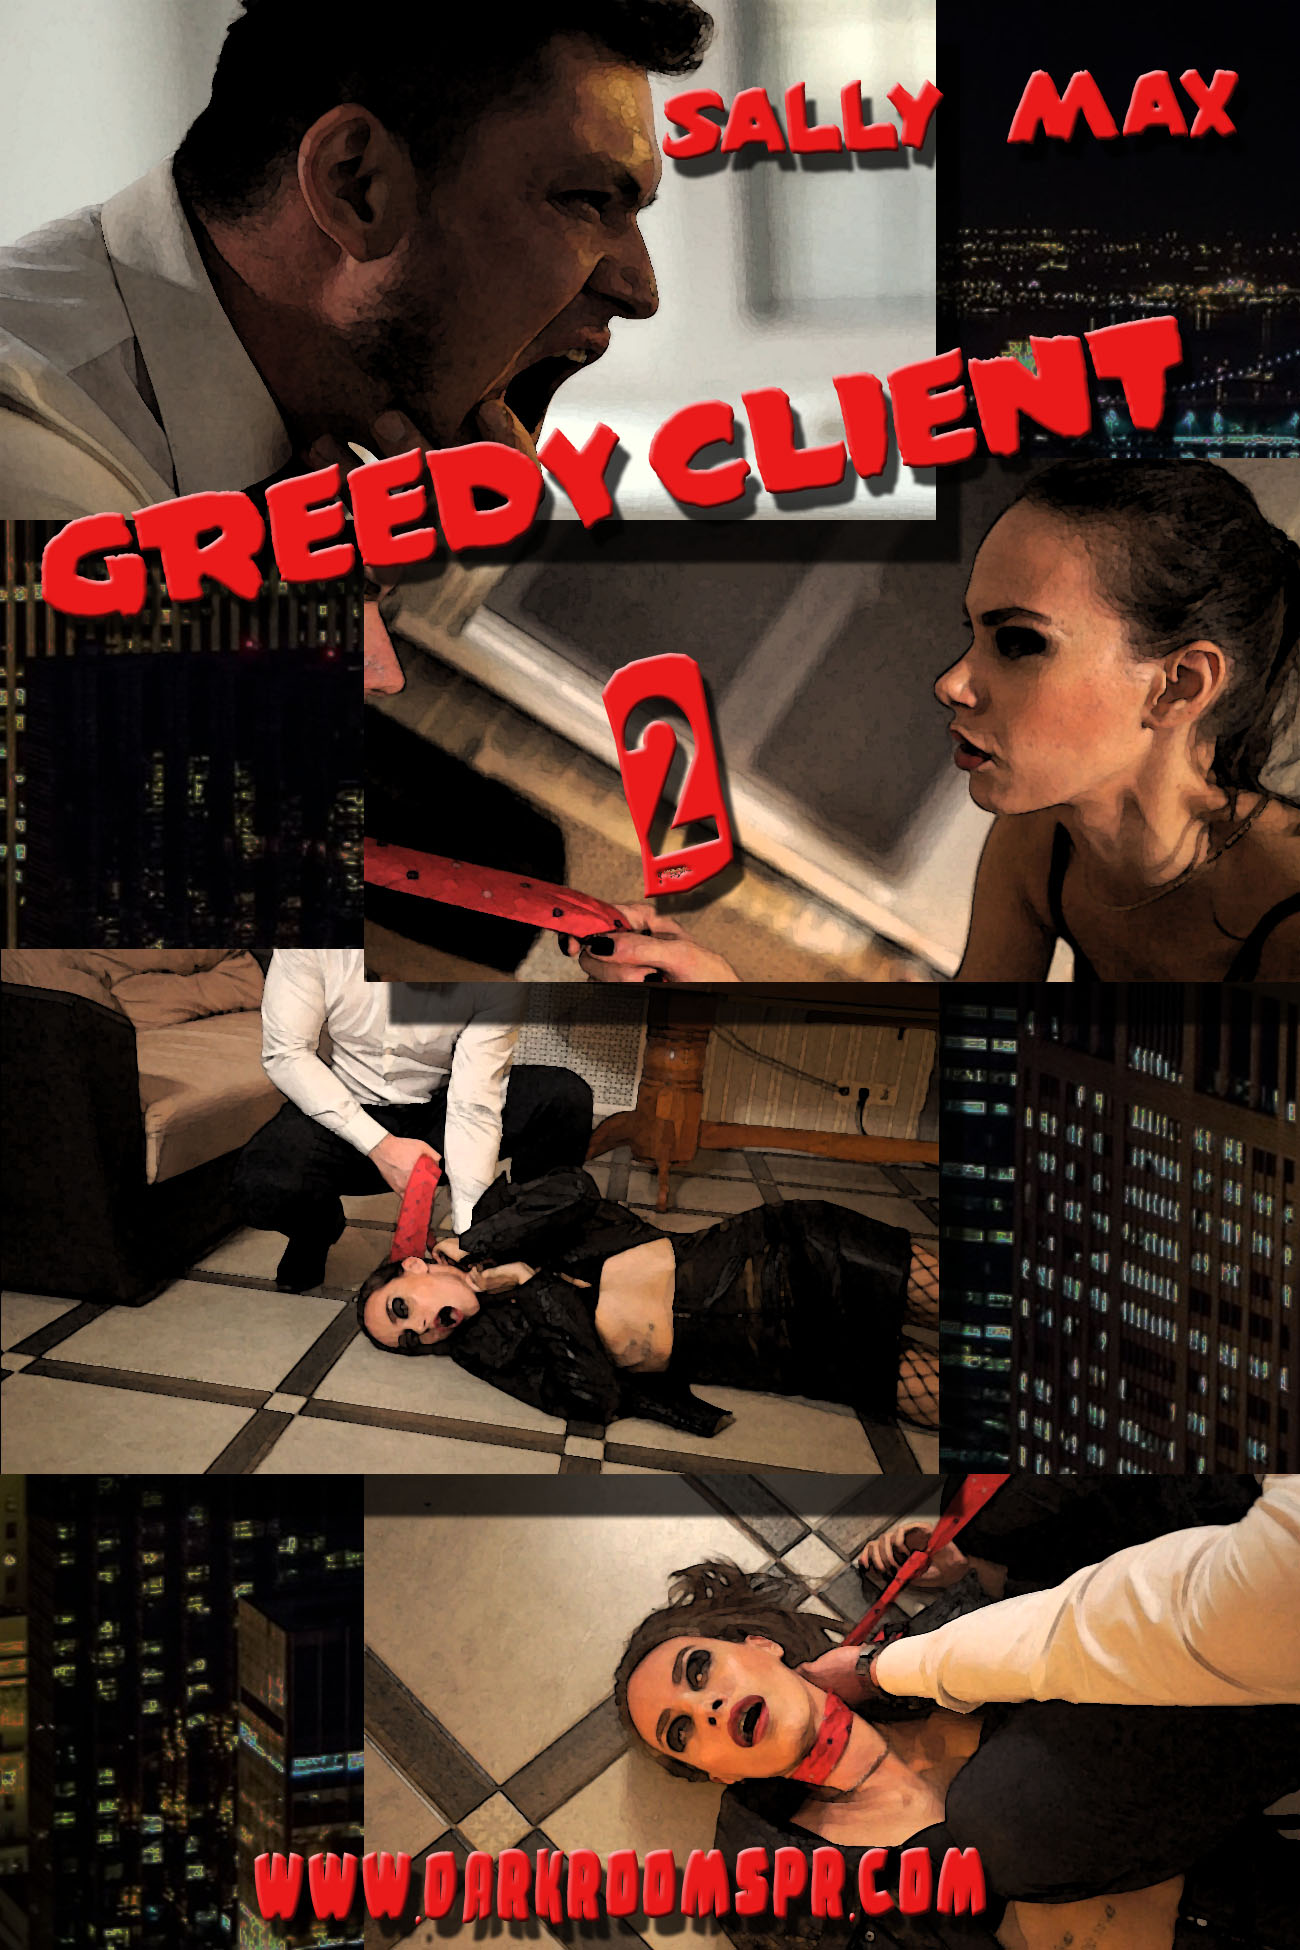 GREEDY CLIENT 2